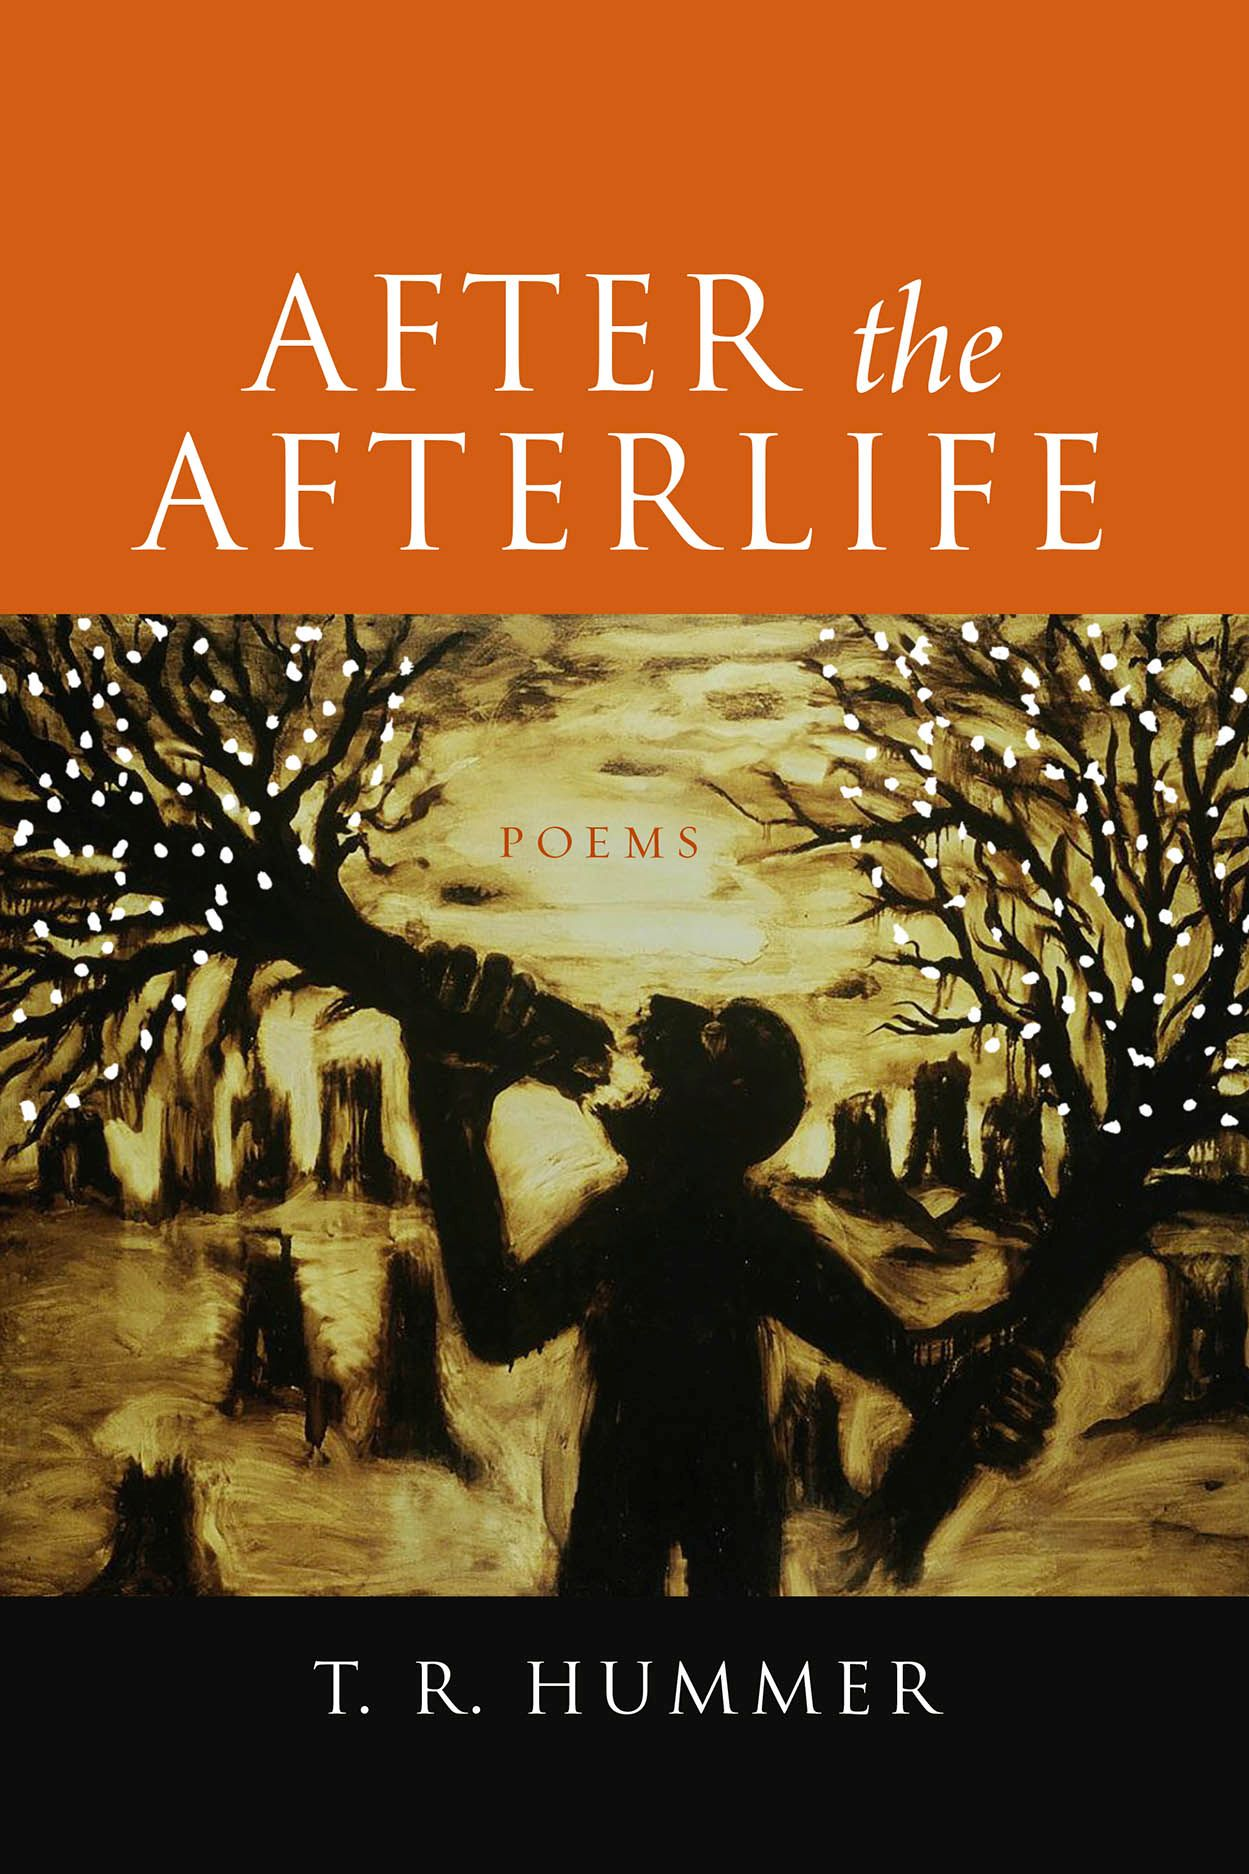 After the Afterlife: Poems